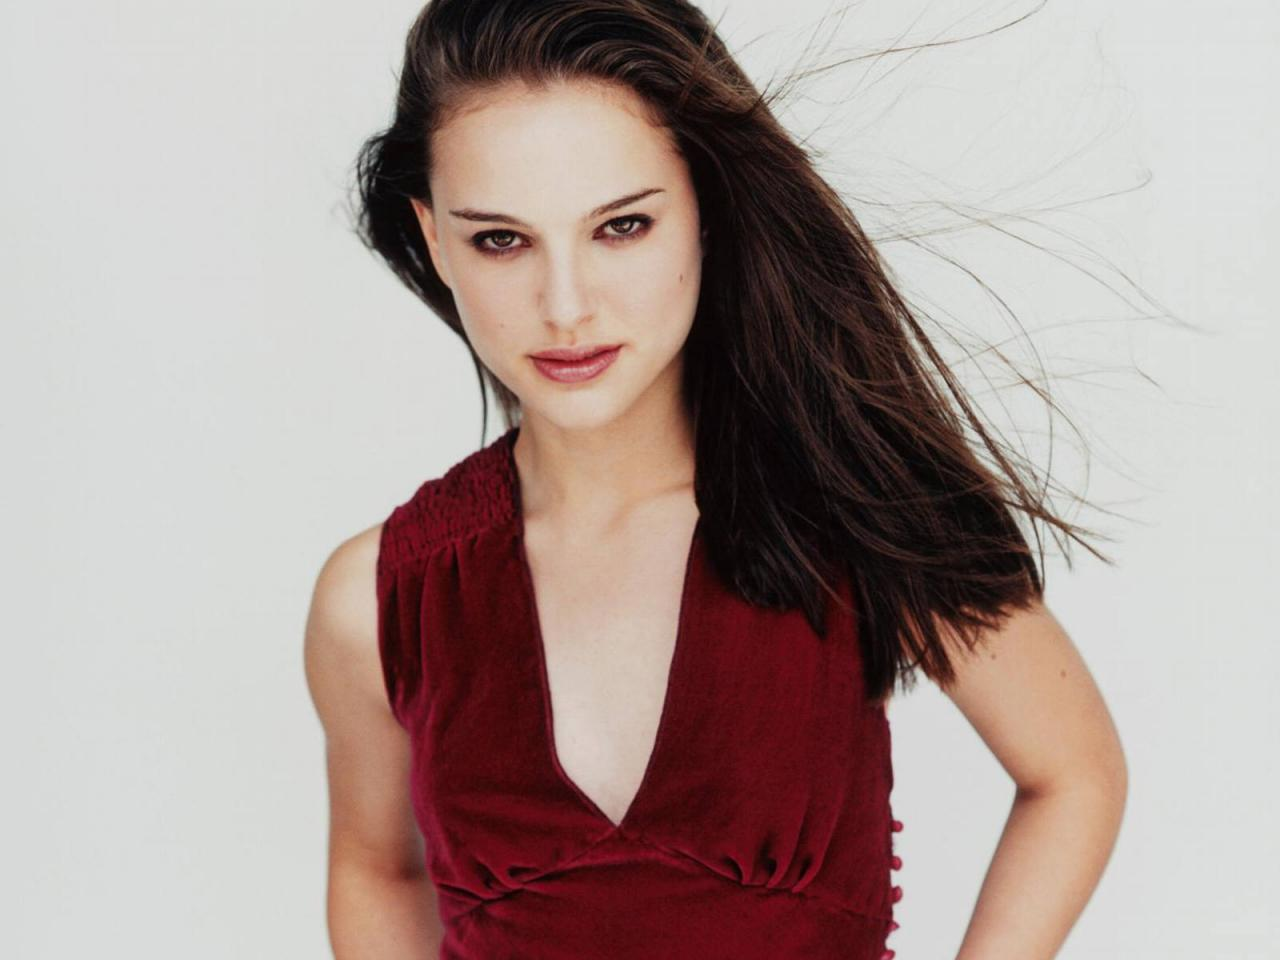 Wallpaper Natalie Portman portrait tenue rouge